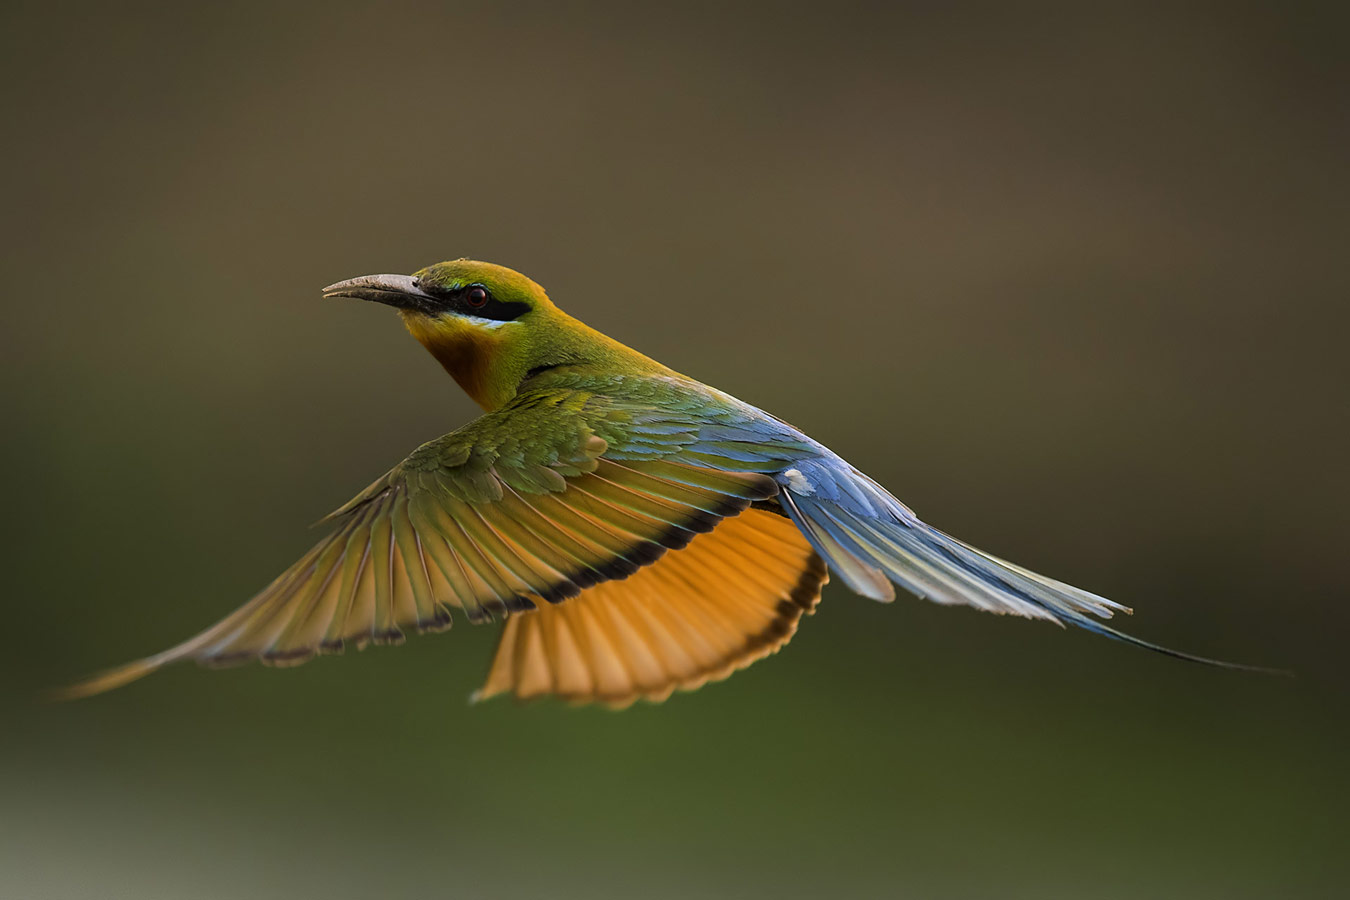 Blue tailed bee eater, © Kallol Mukherjee, West-Bengal, India, Highly Honored Birds, Nature's Best Photography Asia